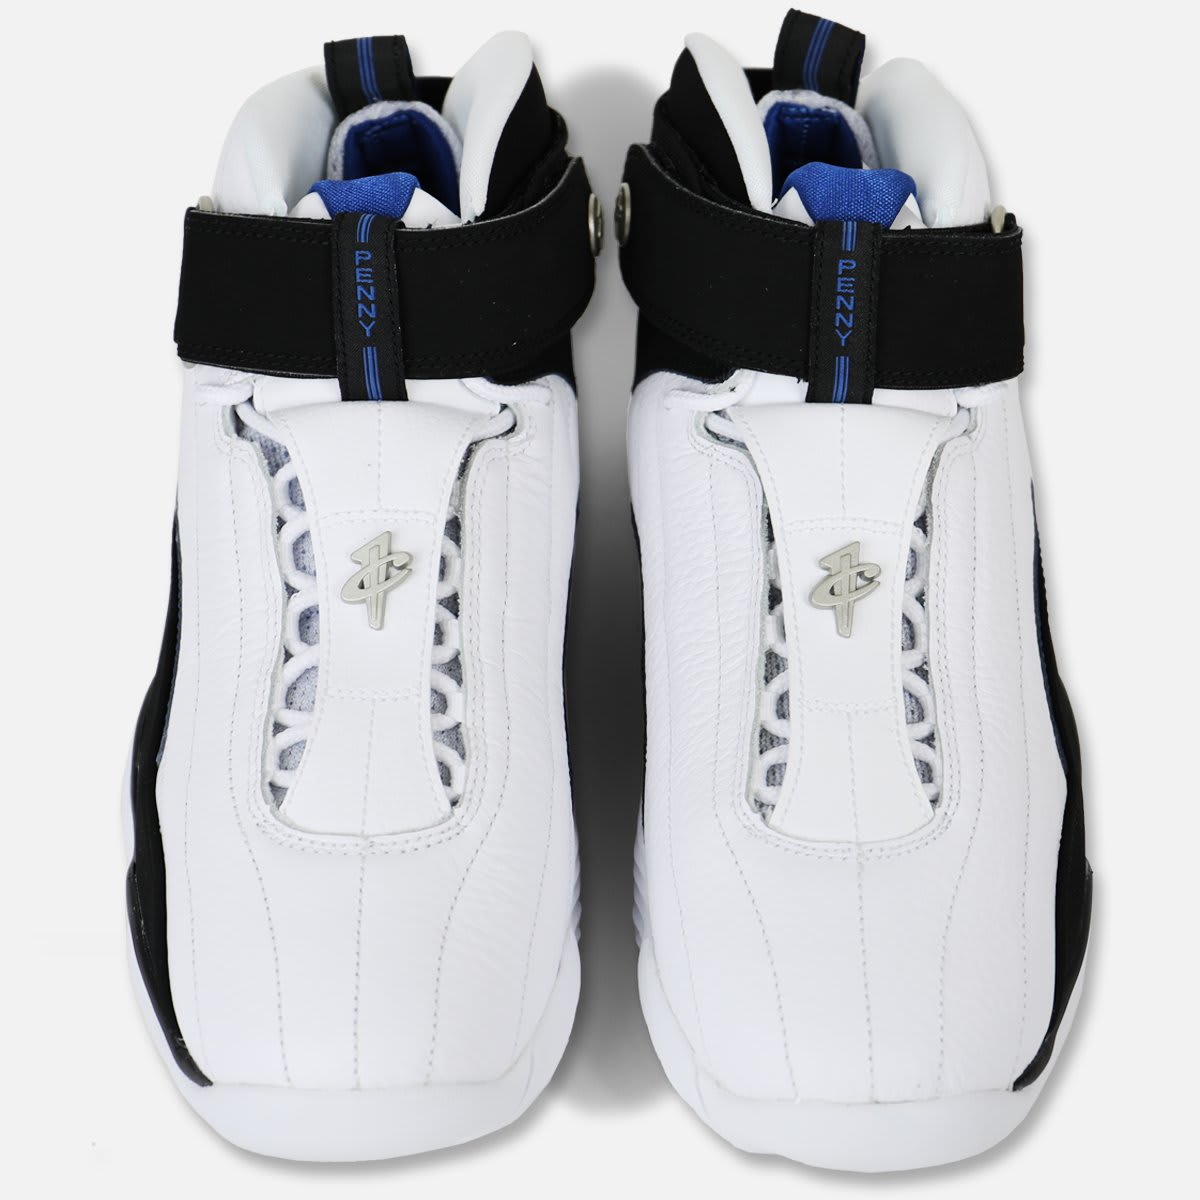 Nike Air Penny 4 Orlando Release Date Top 864018-100